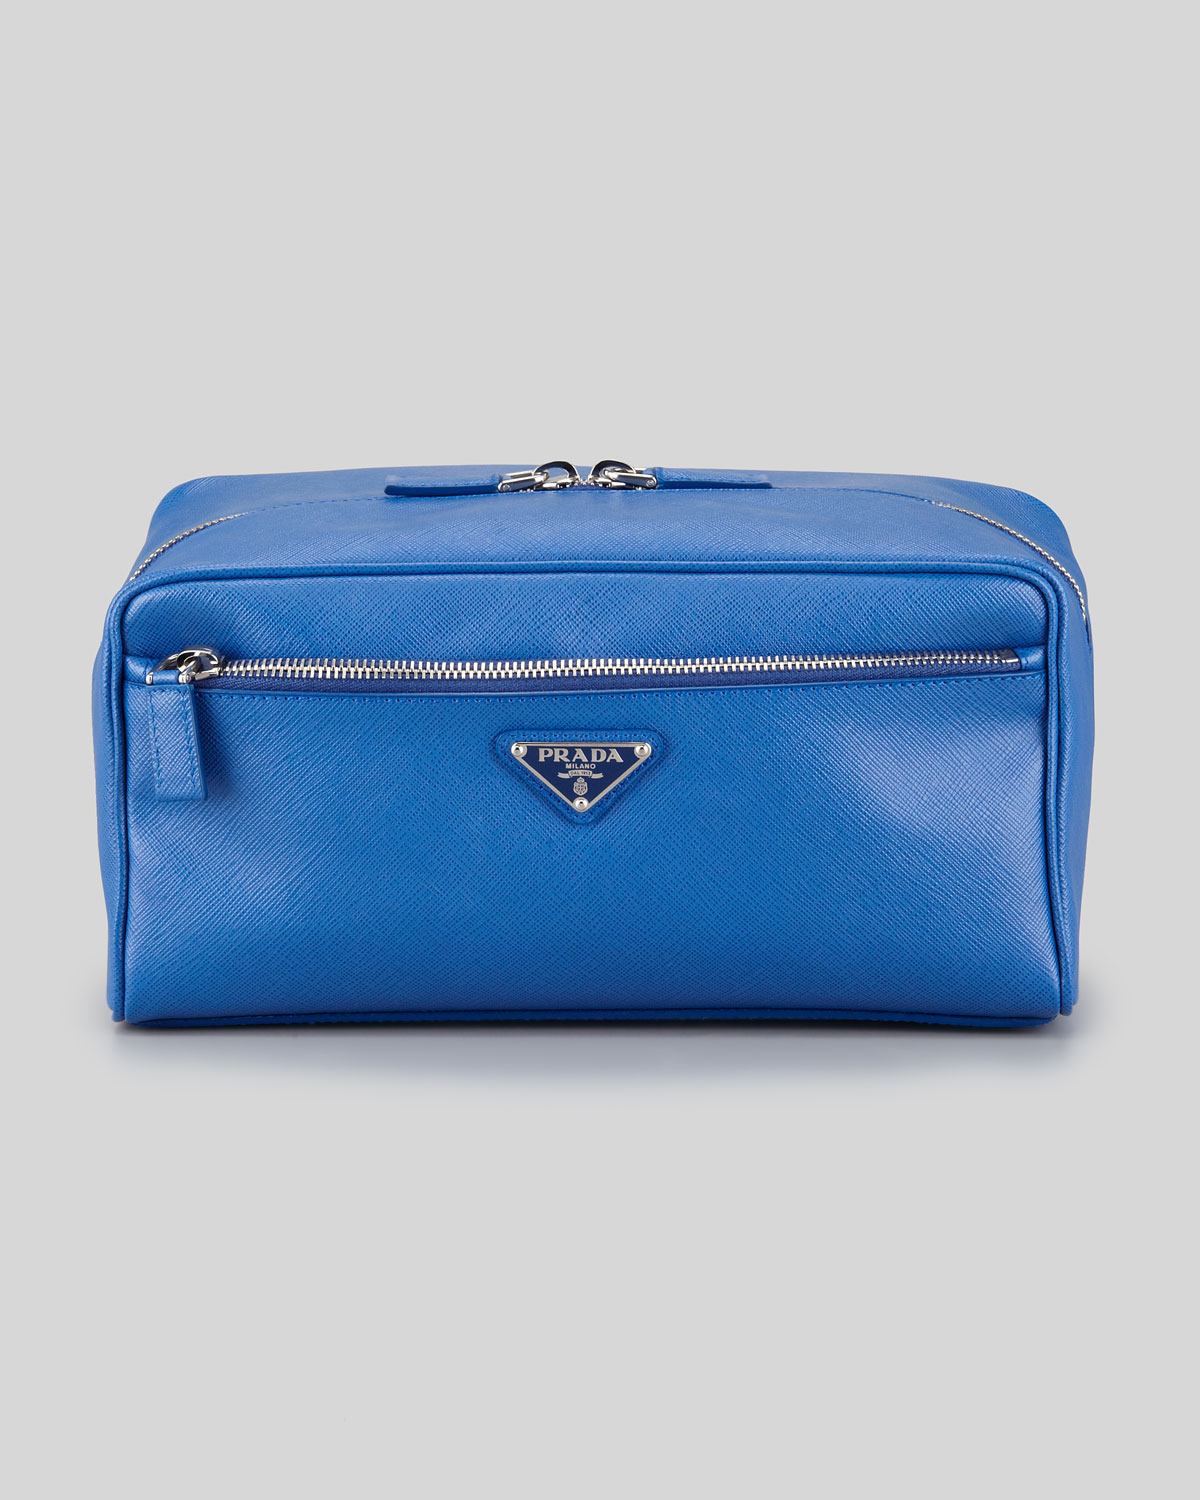 prada saffiano travel toiletry bag in blue for men | lyst